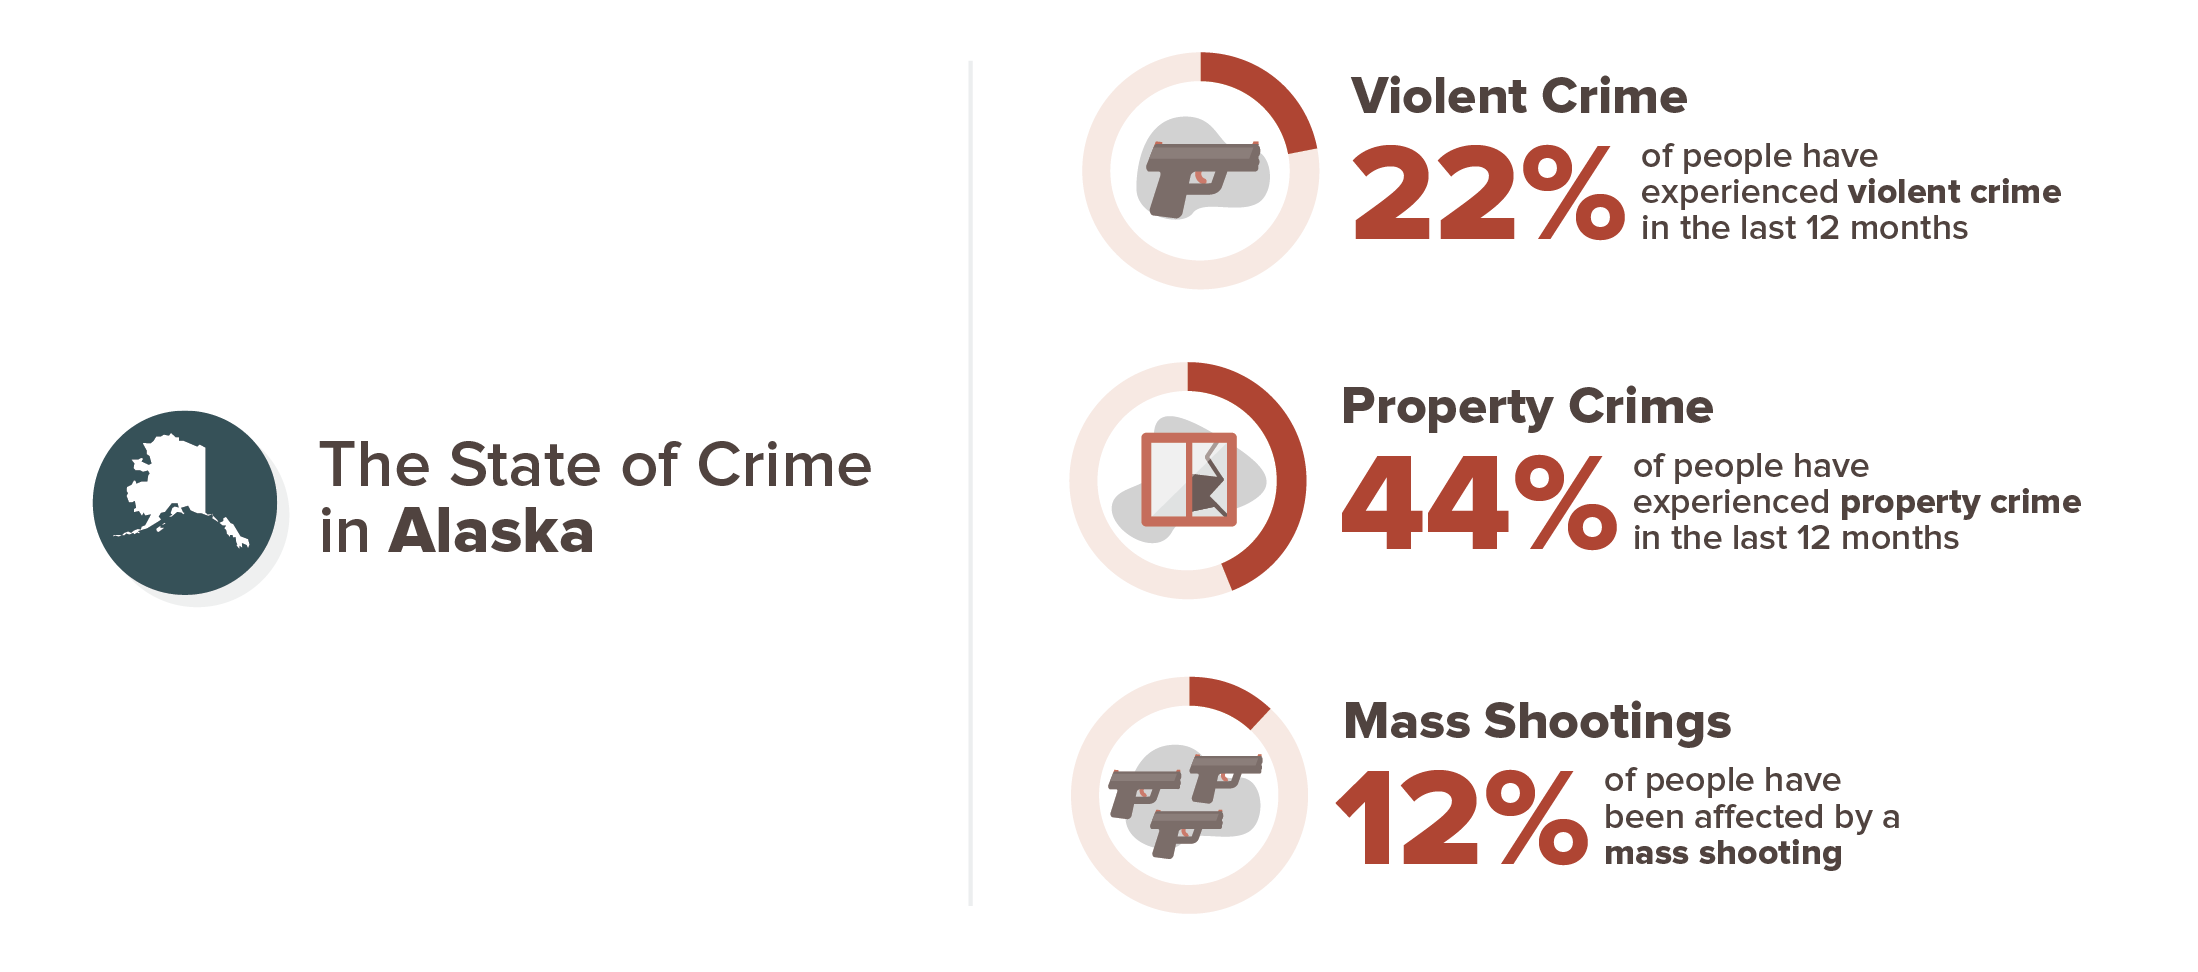 Alaska experience with crime infographic; 22% violent crime, 44% property crime, 12% mass shooting